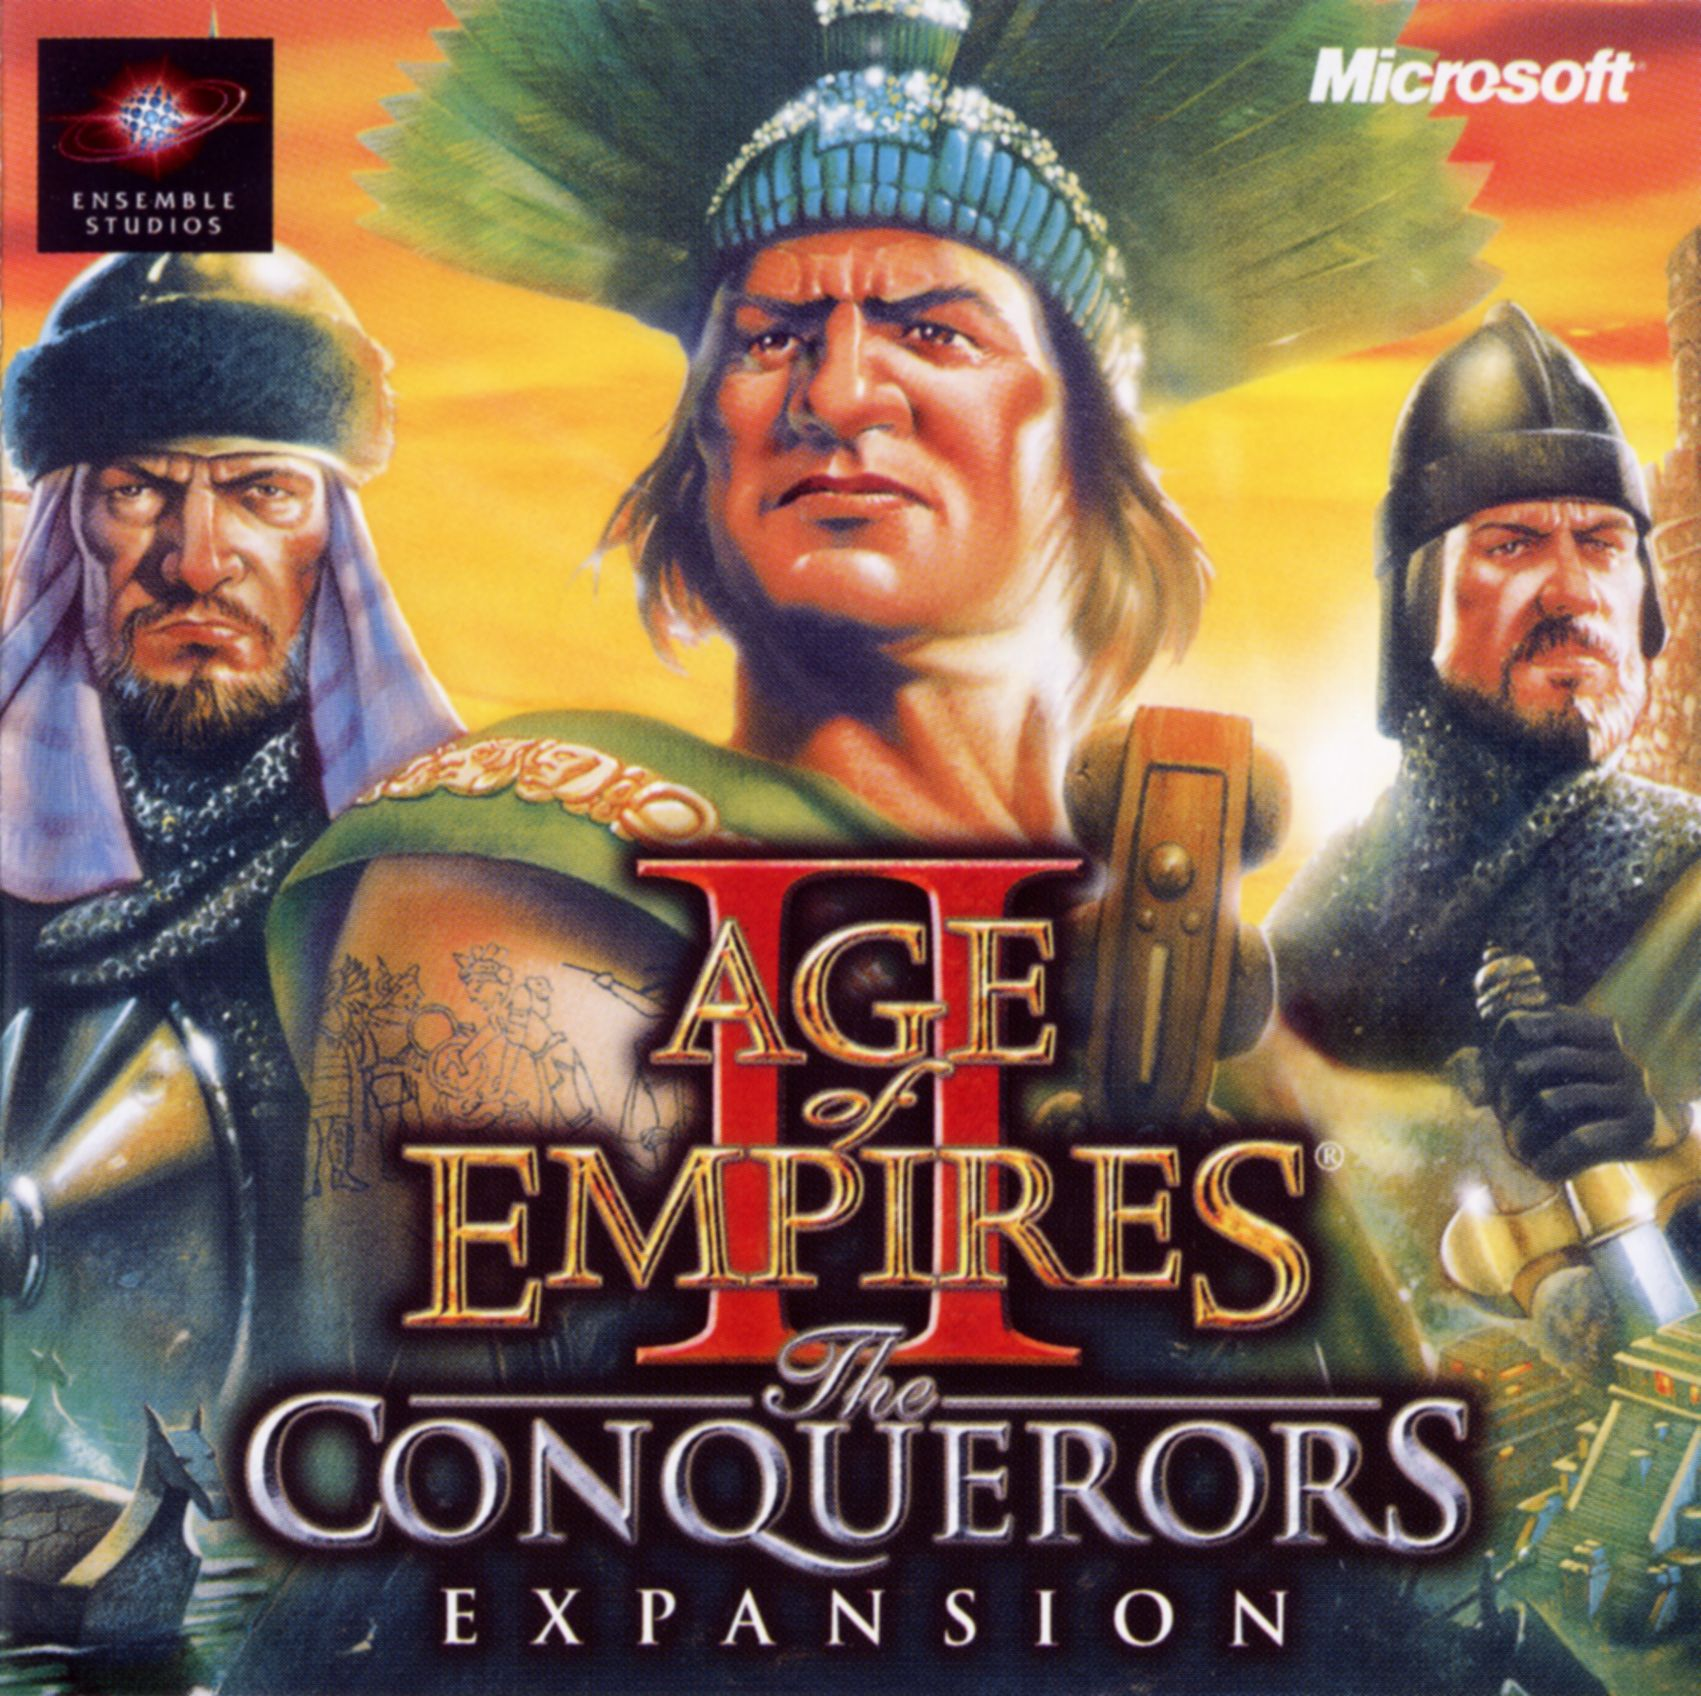 http://www.ilbaluardo.com/Cover/Pc/Age of Empires 2 - The Conquerors - Front.jpg